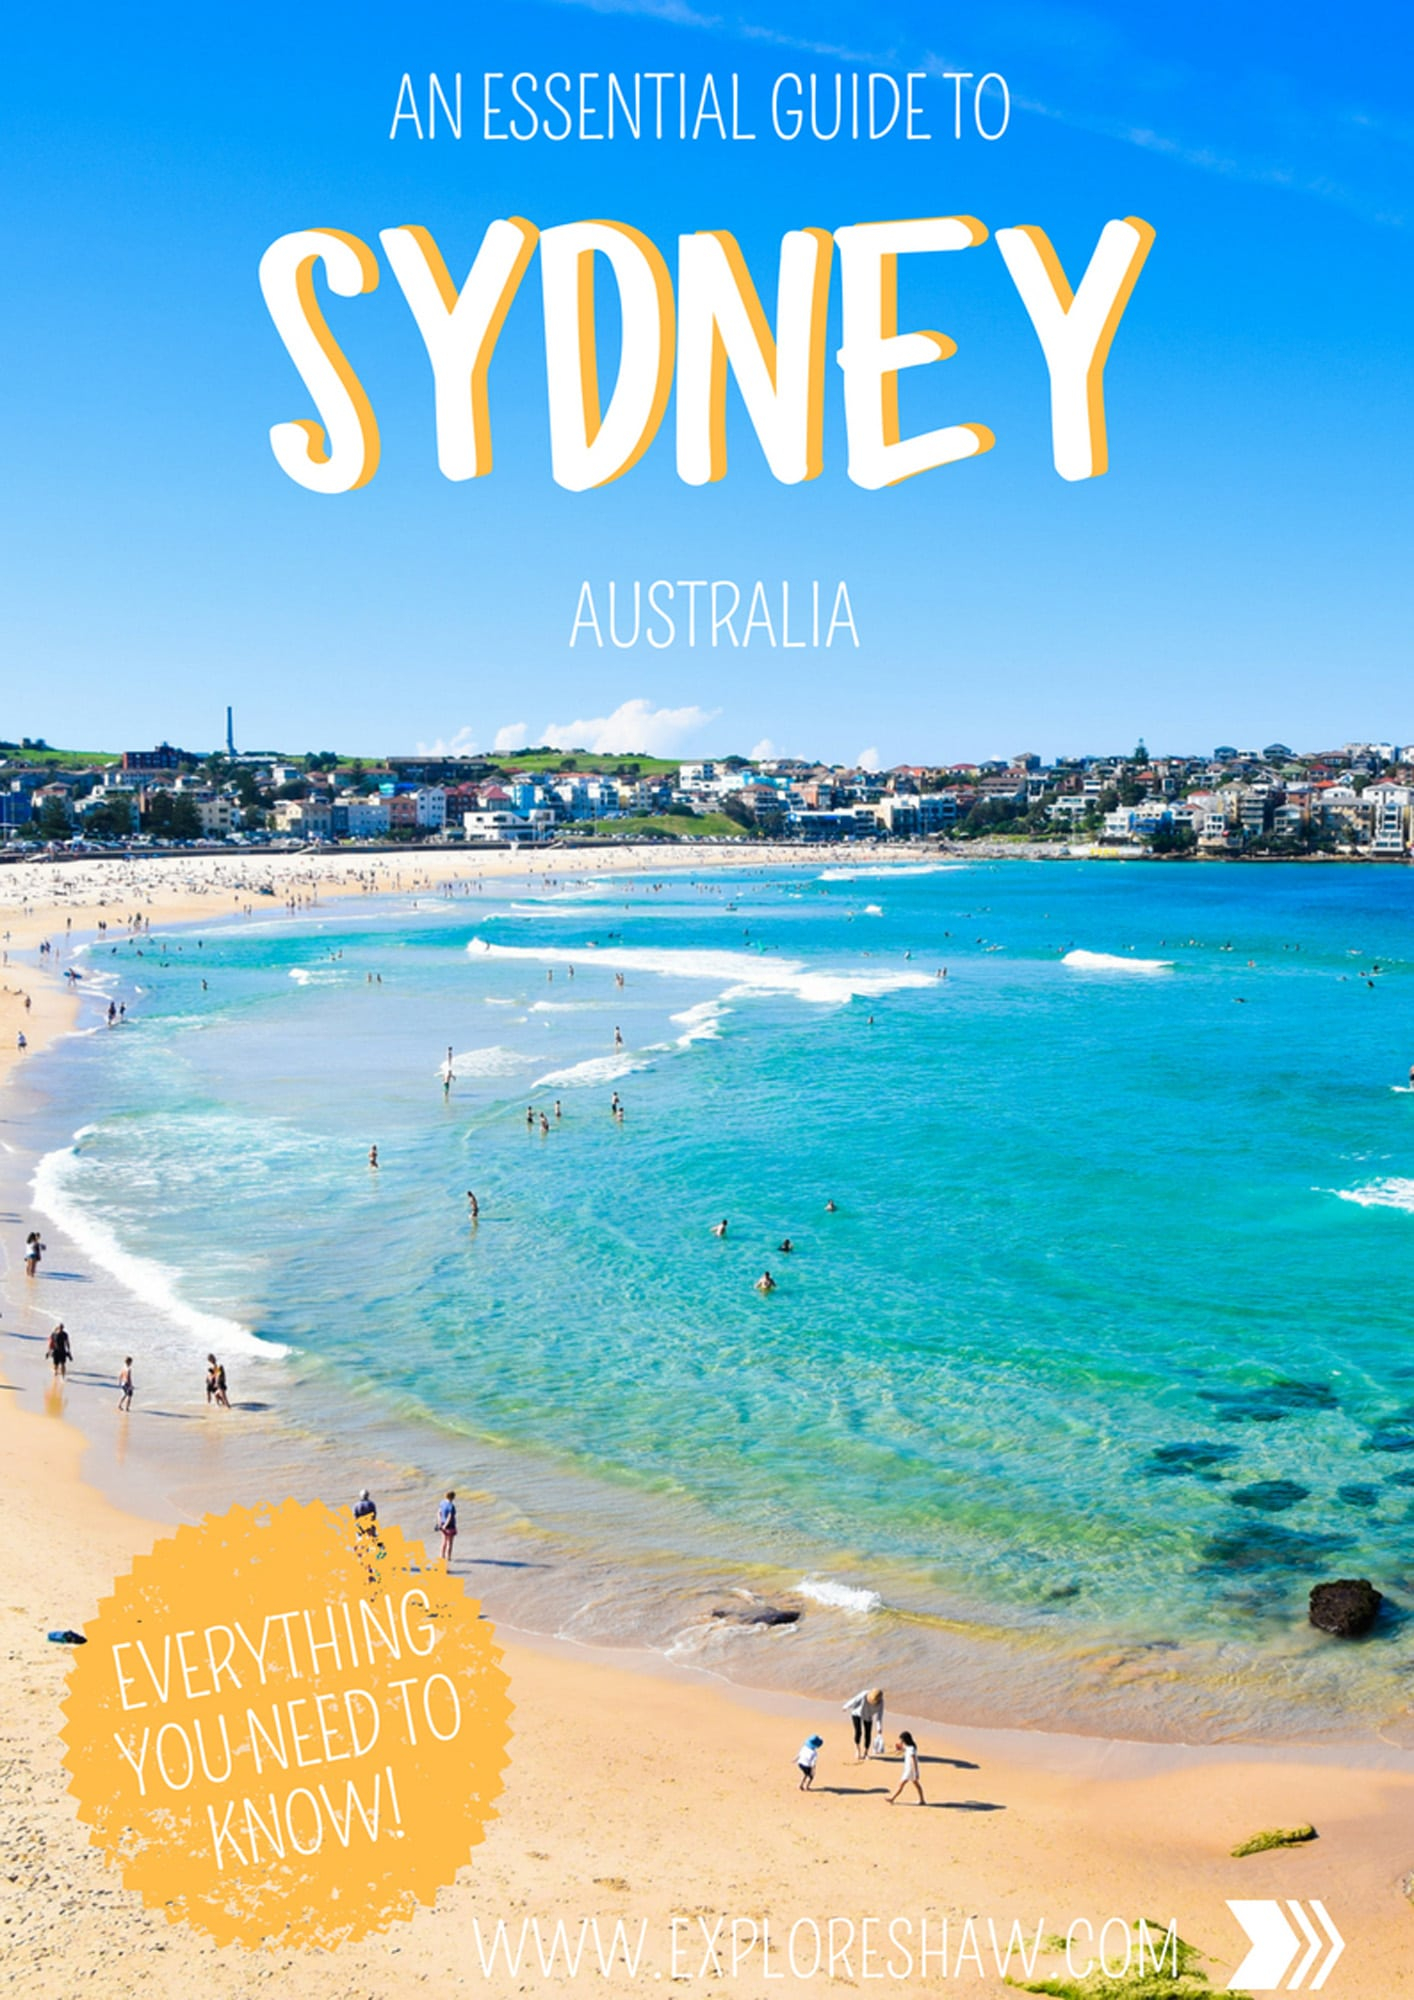 AN ESSENTIAL GUIDE TO SYDNEY